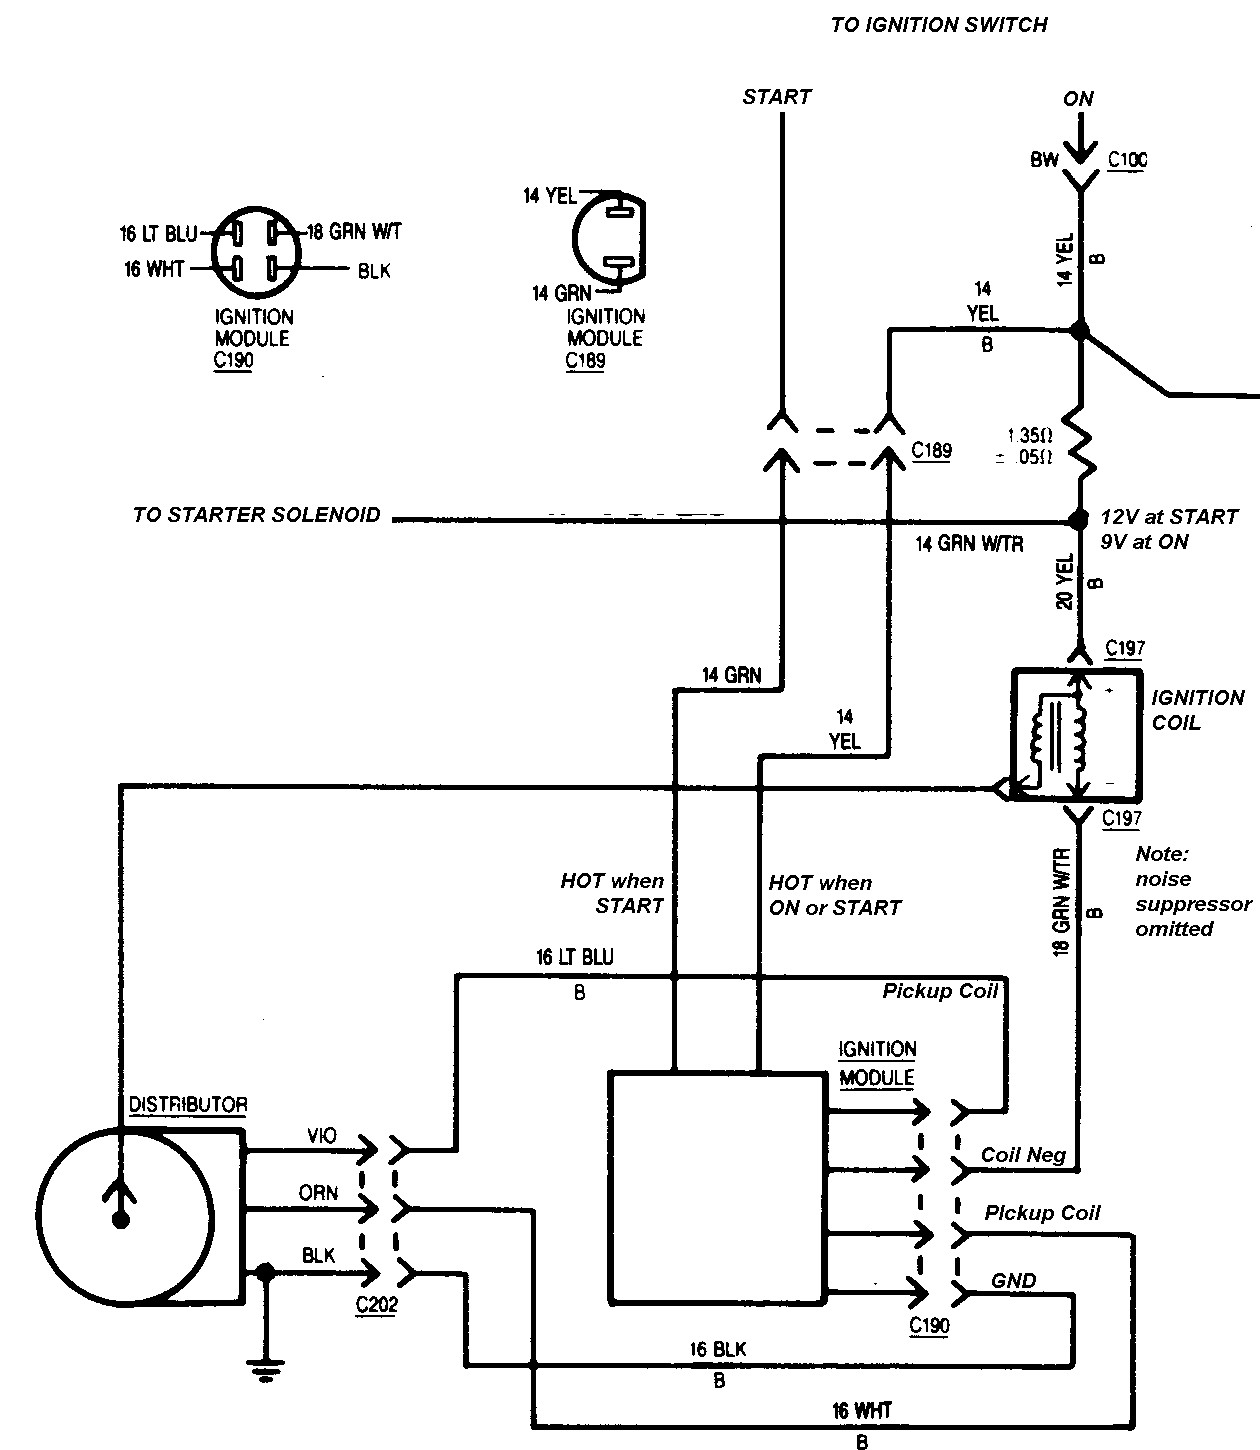 hight resolution of 1977 chevy 350 distributor wiring diagram